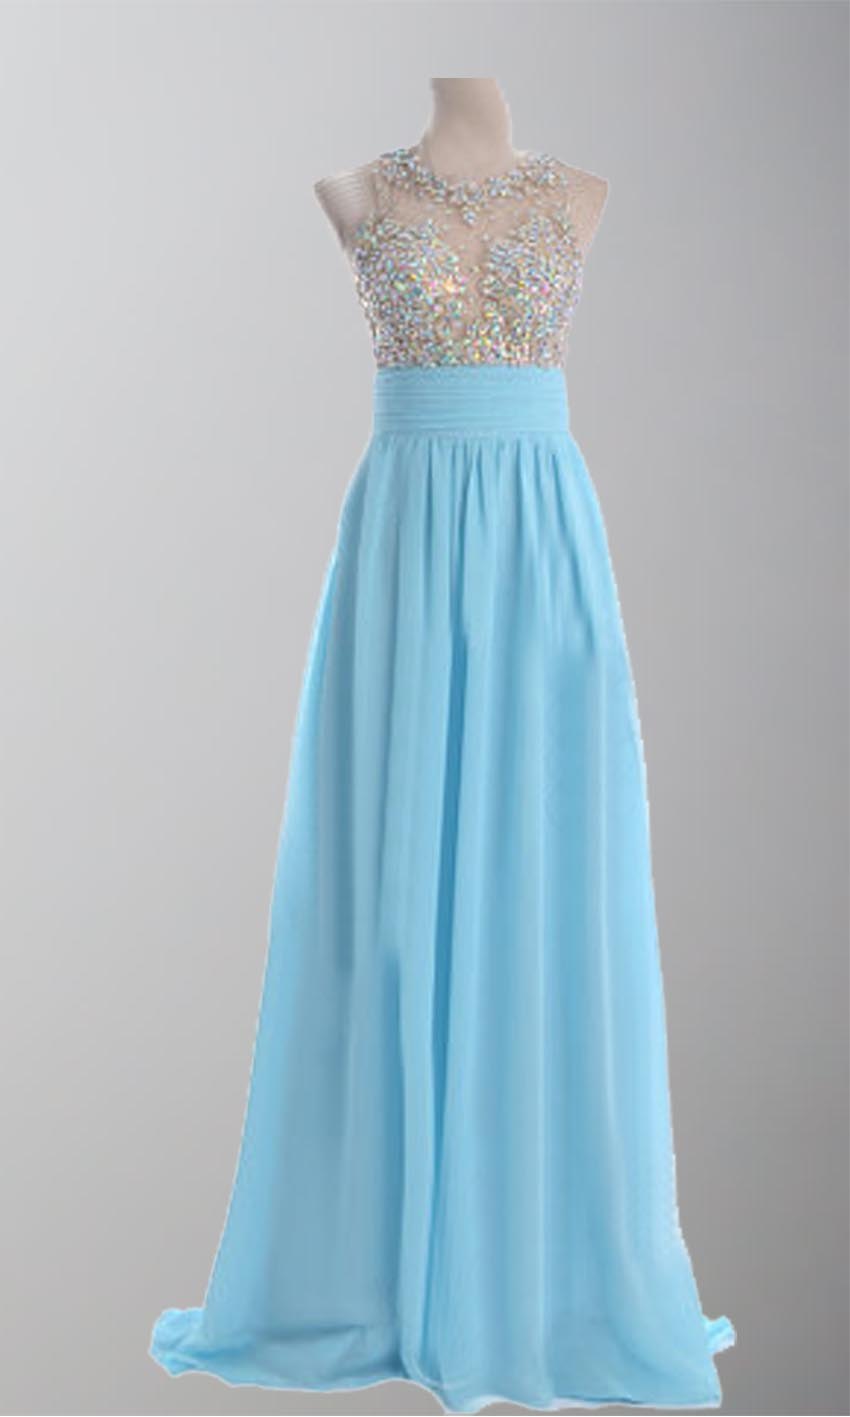 Sexy Gorgeou Lace Beading And Sequin Prom Dresses KSP280 [KSP280] - £108.00 : Cheap Prom Dresses Uk, Bridesmaid Dresses, 2014 Prom & Evening Dresses, Look for cheap elegant prom dresses 2014, cocktail gowns, or dresses for special occasions? kissprom.co.uk offers various bridesmaid dresses, evening dress, free shipping to UK etc.